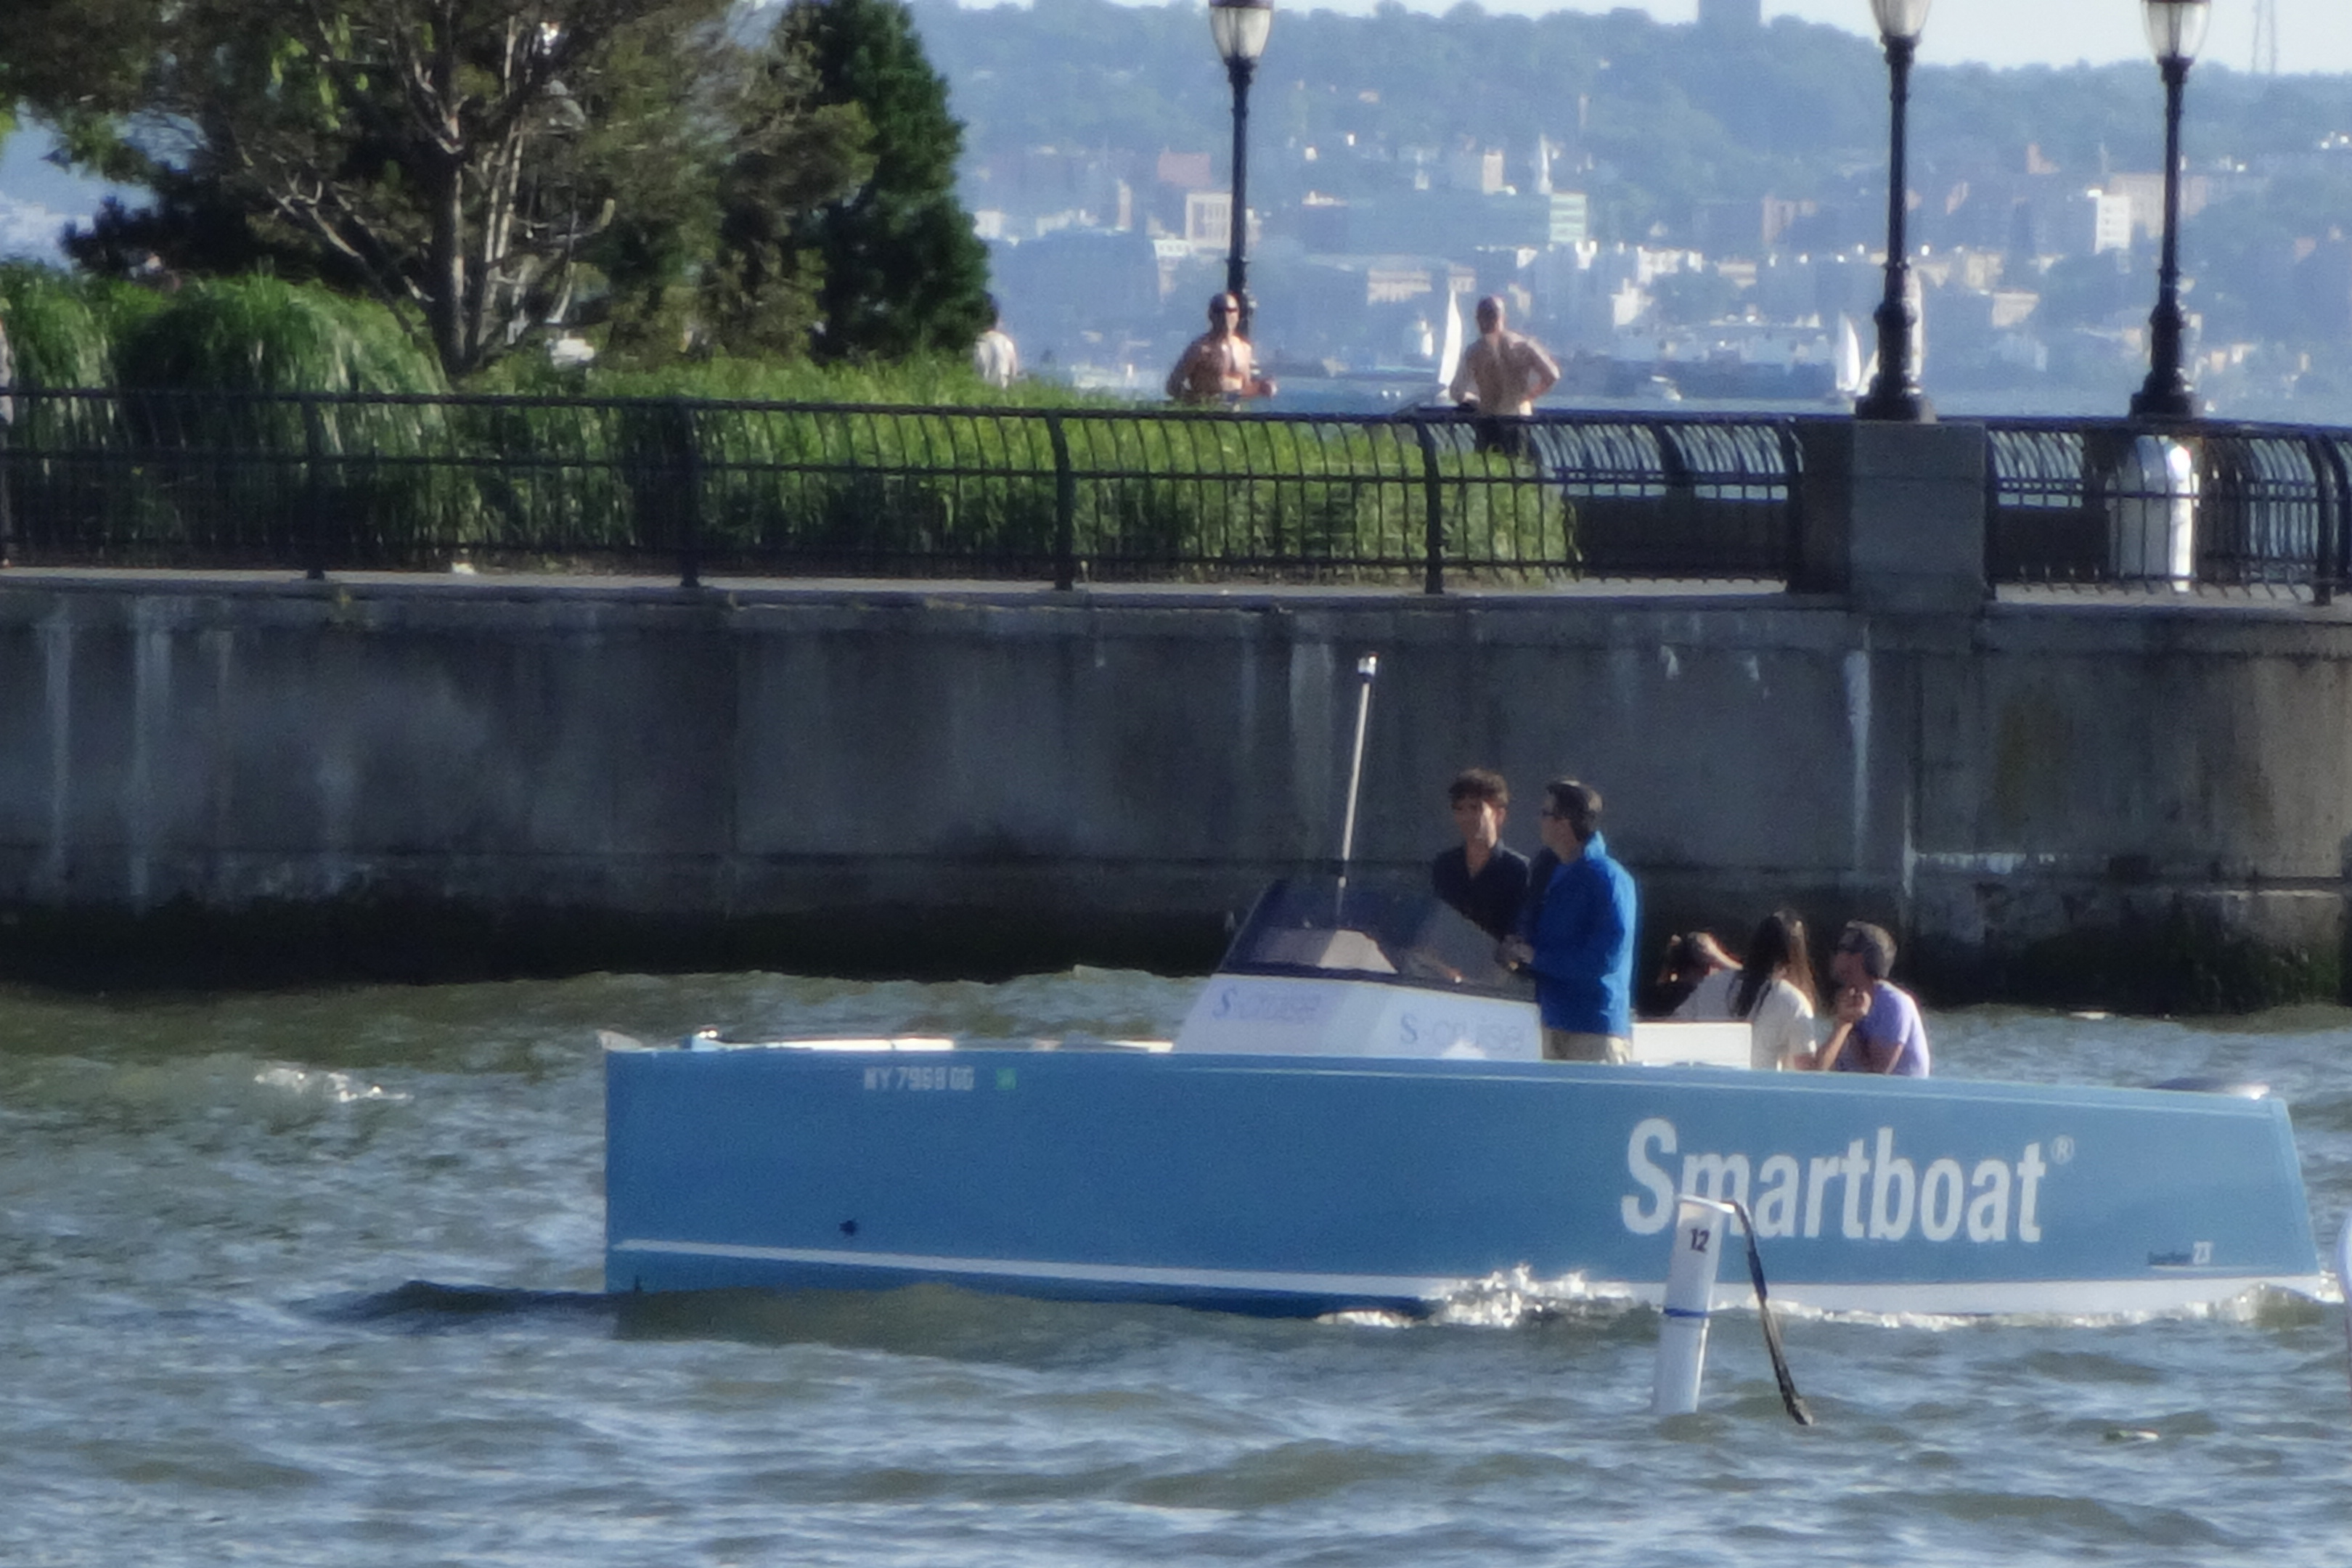 Smartboat in water